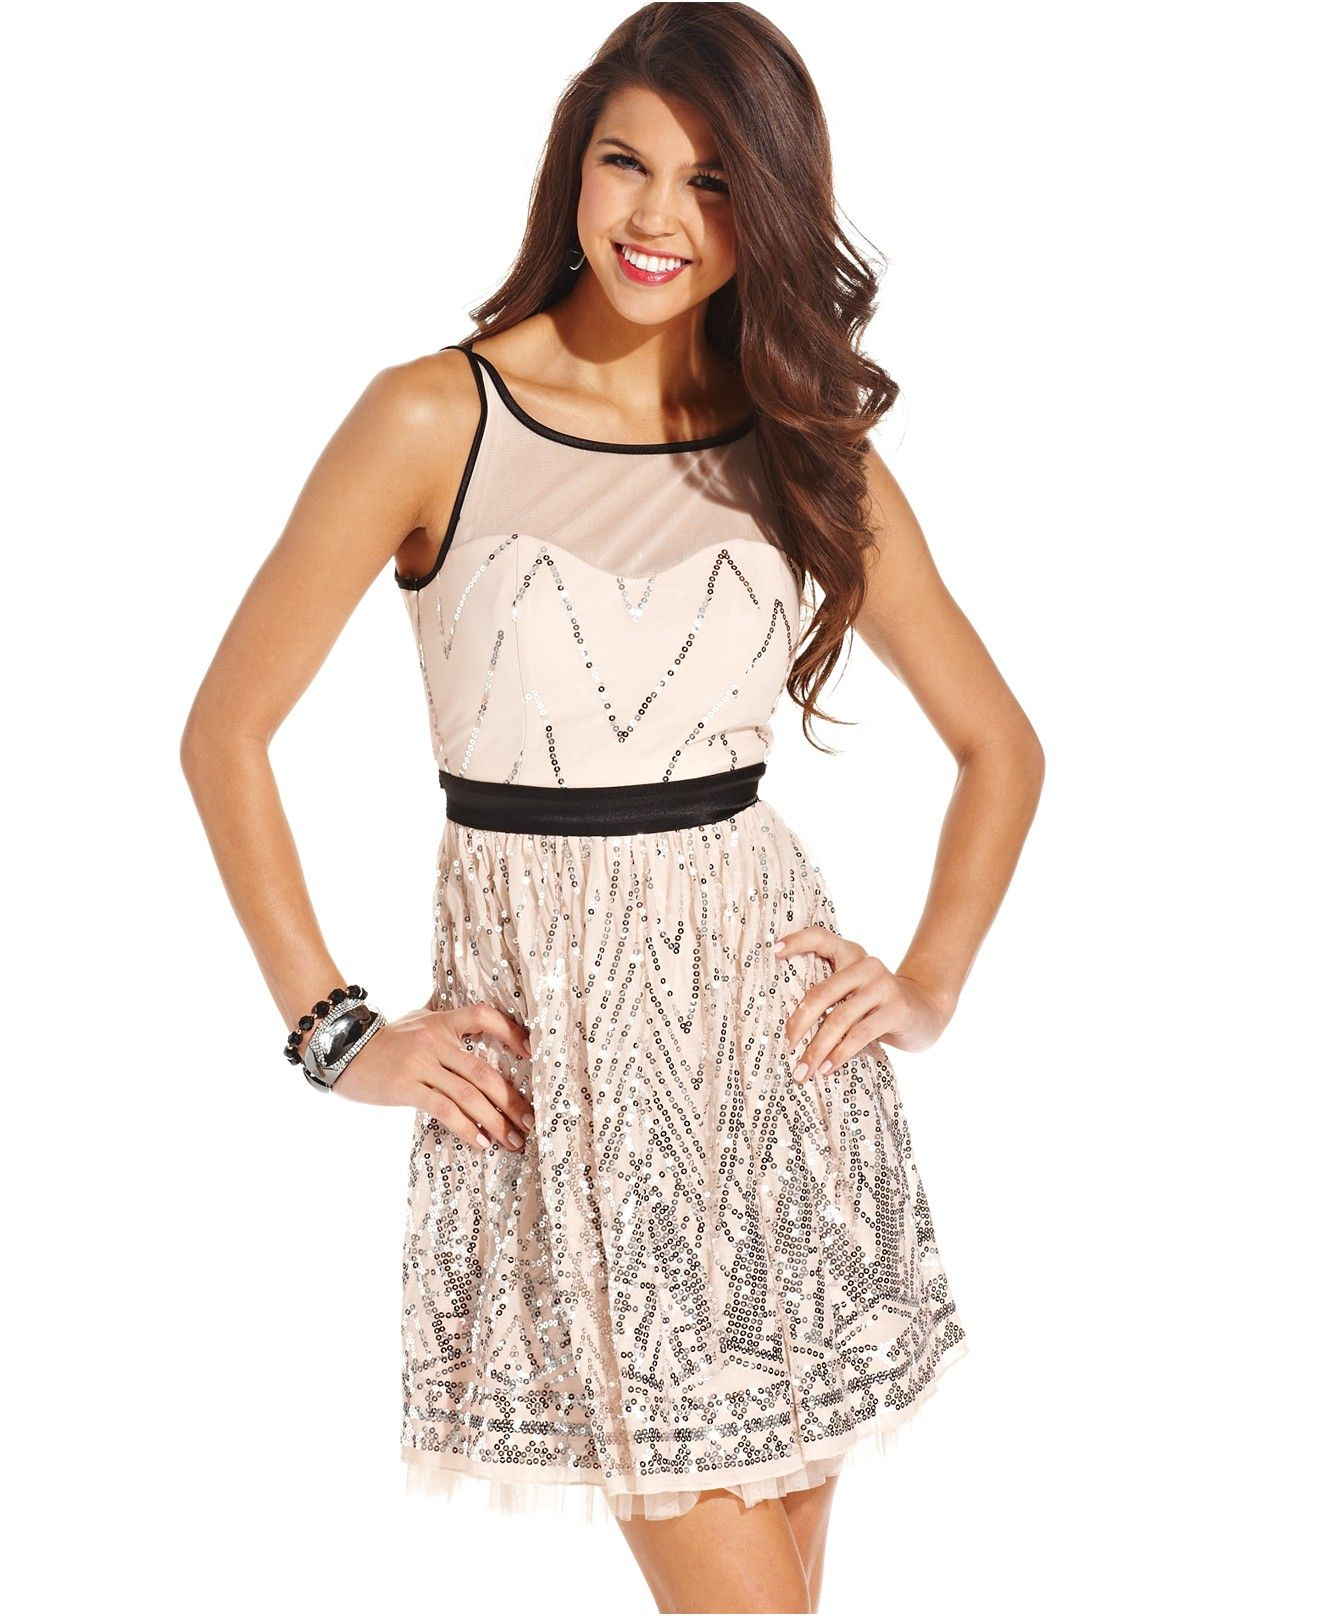 Macy's Formal Dresses Special Occasion | Dress images